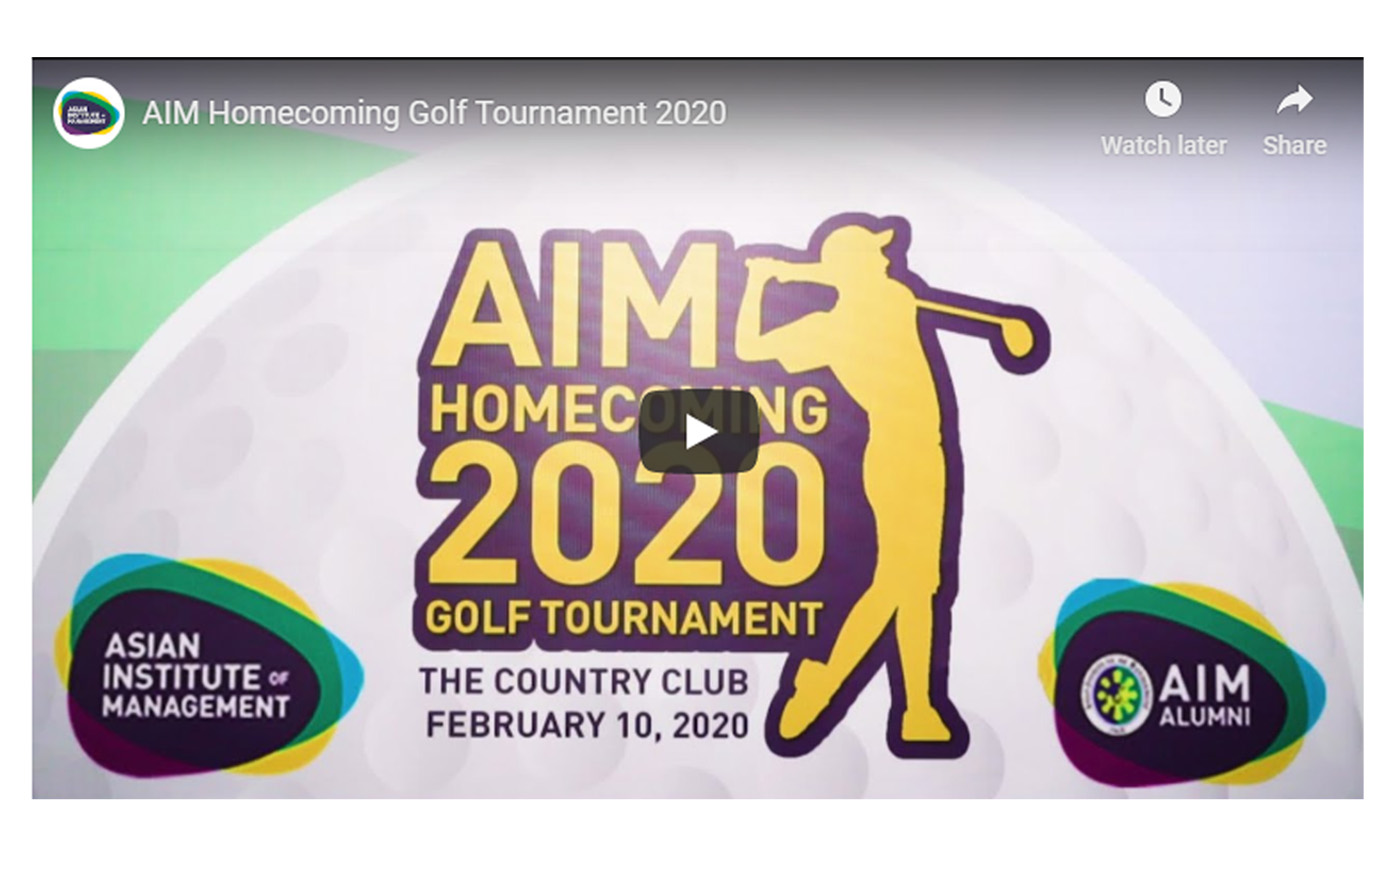 AIM Homecoming 2020 Golf Tournament